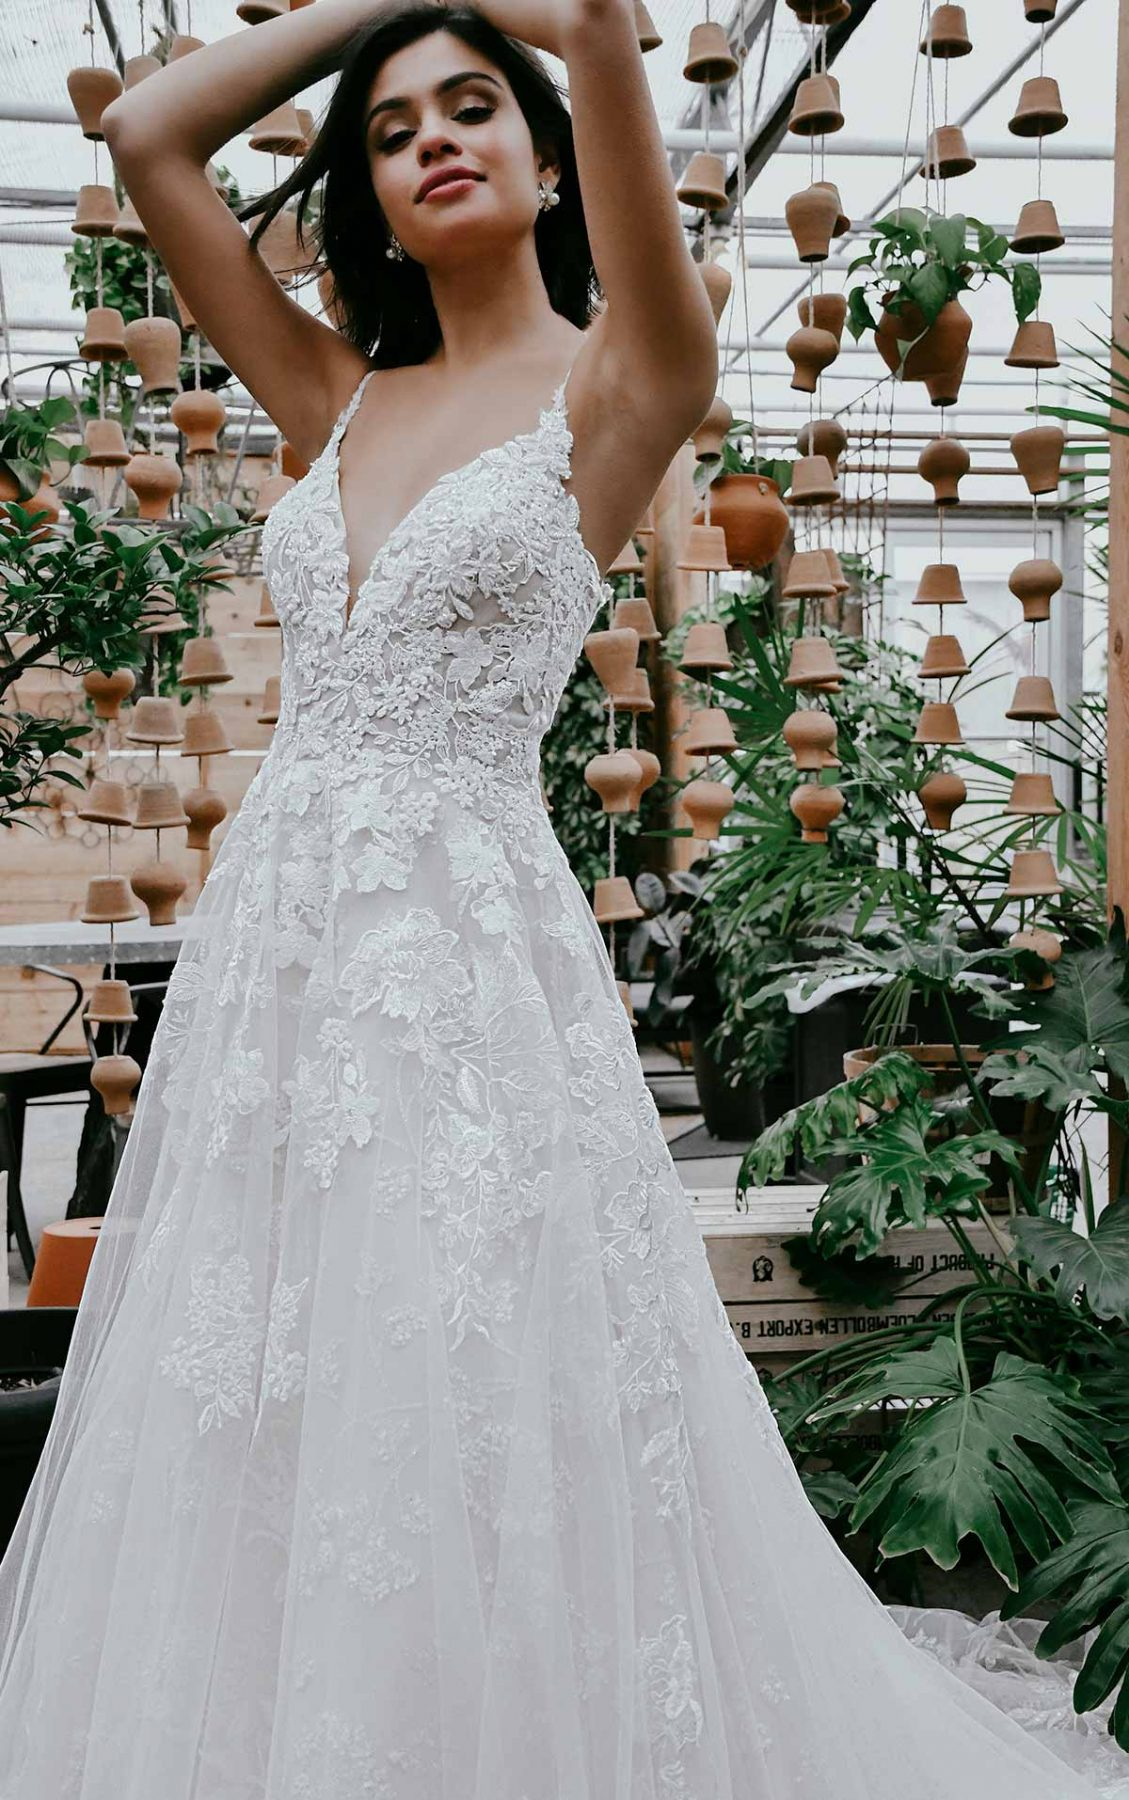 Choosing the right wedding dress is more than just trying on